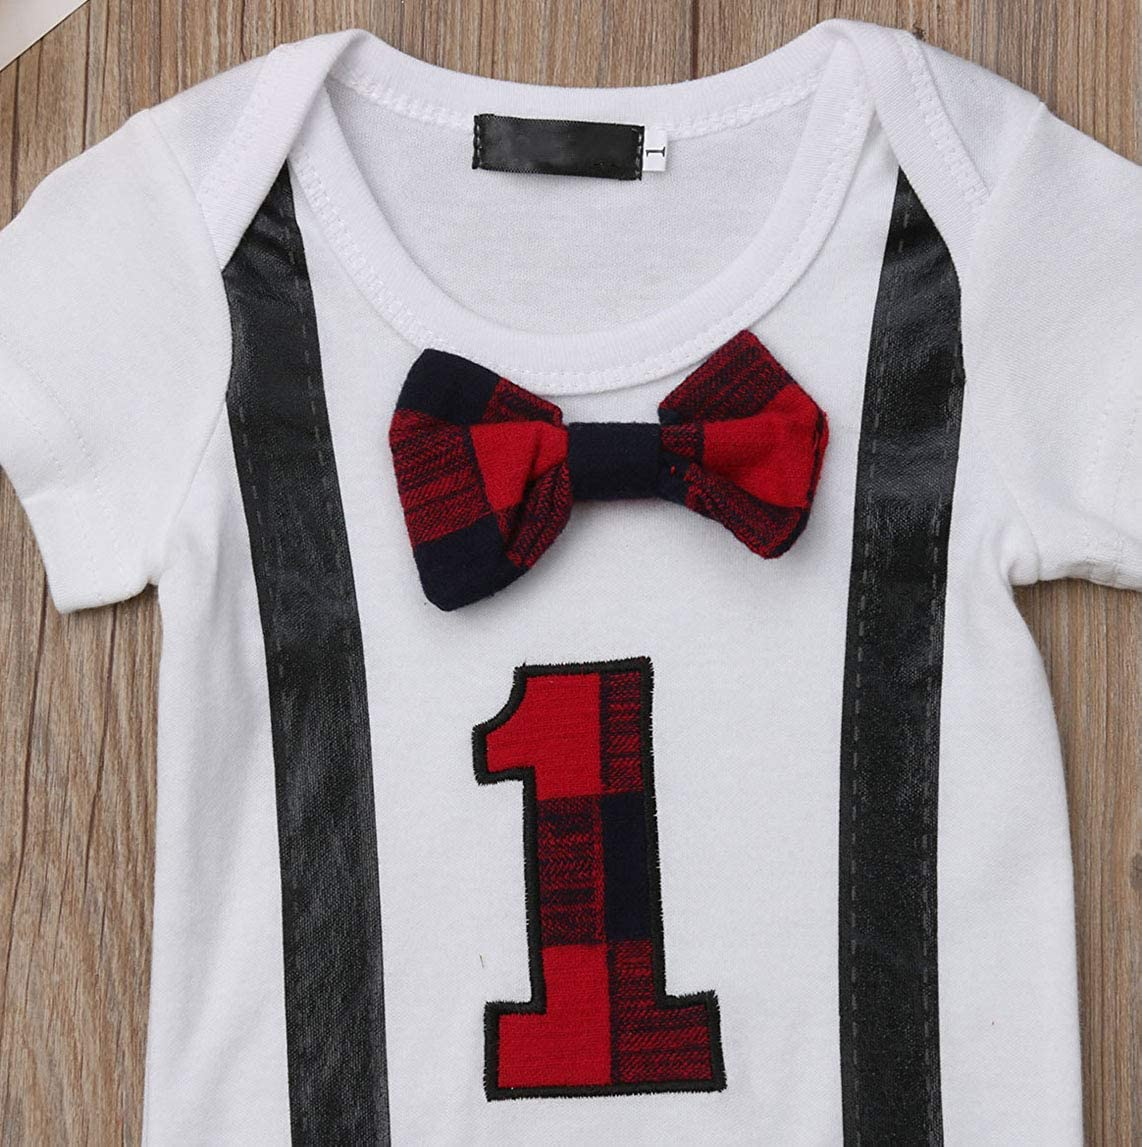 rechange Newborn Infant Baby Boy 1st Birthday Gentleman Bowtie Short Sleeve Romper Bodysuit